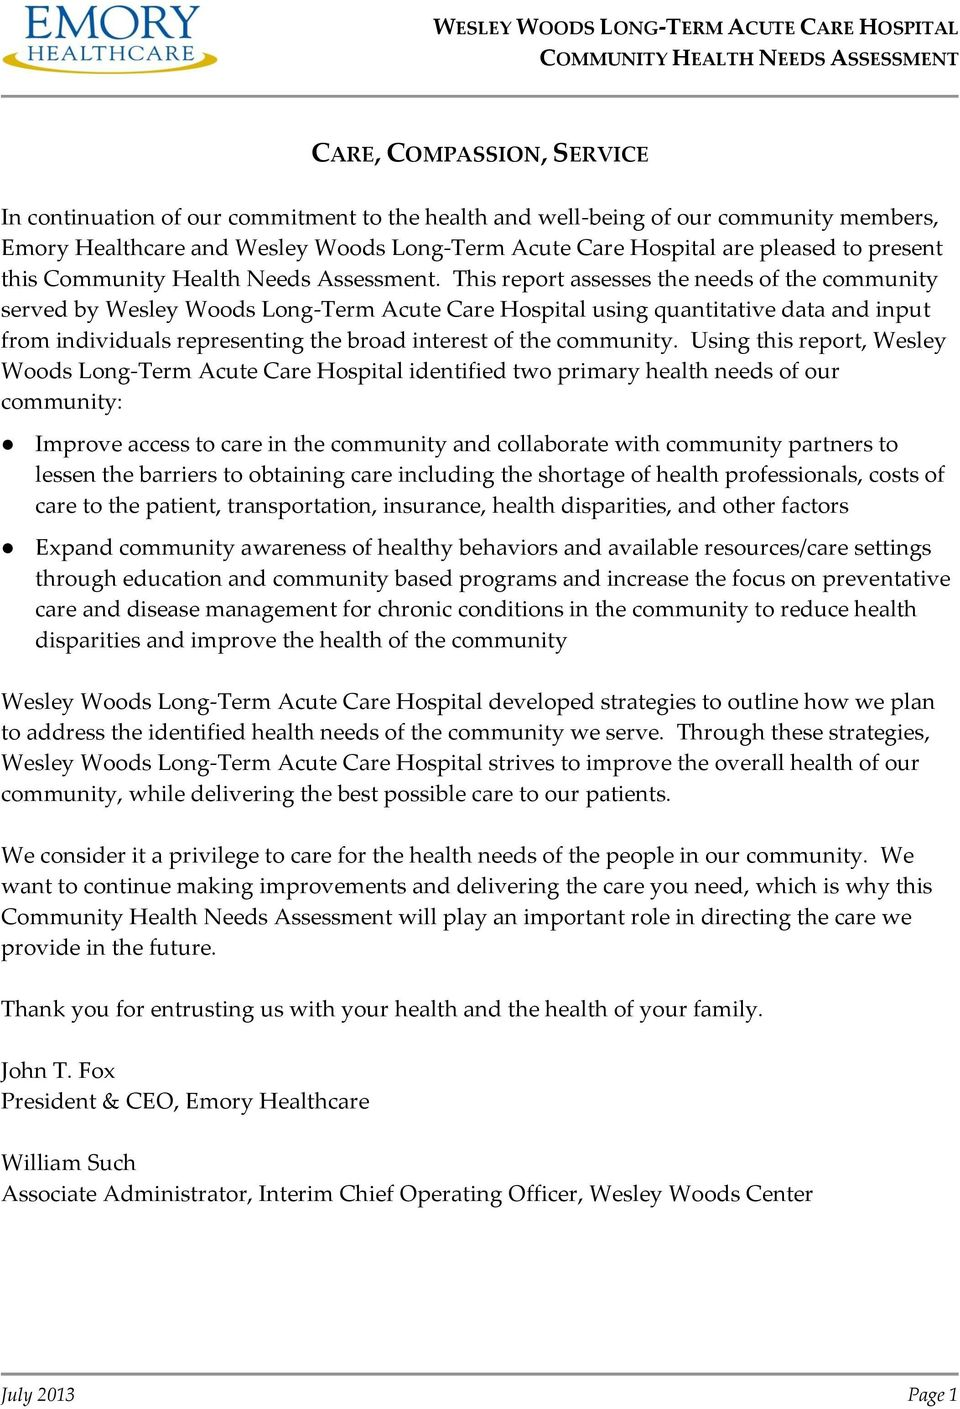 This report assesses the needs of the community served by Wesley Woods Long-Term Acute Care Hospital using quantitative data and input from individuals representing the broad interest of the